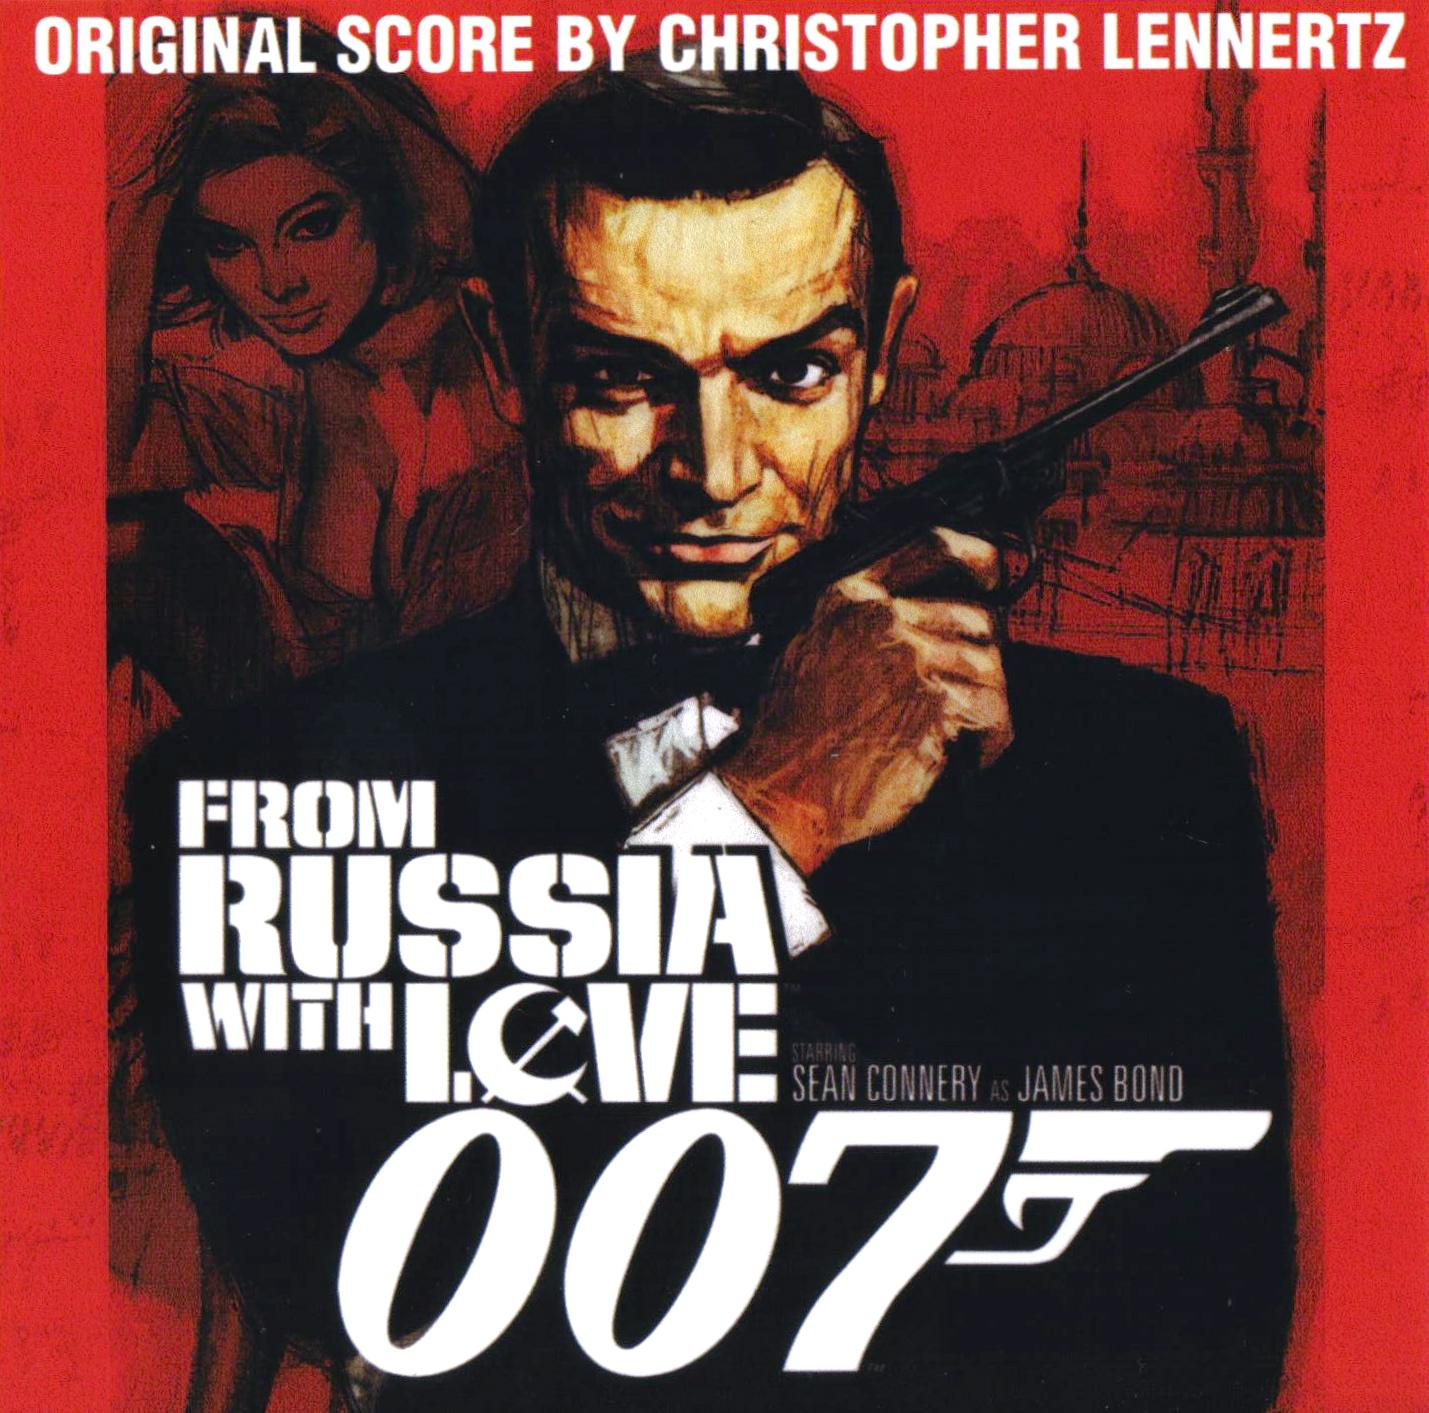 007 from russia with love cheats: